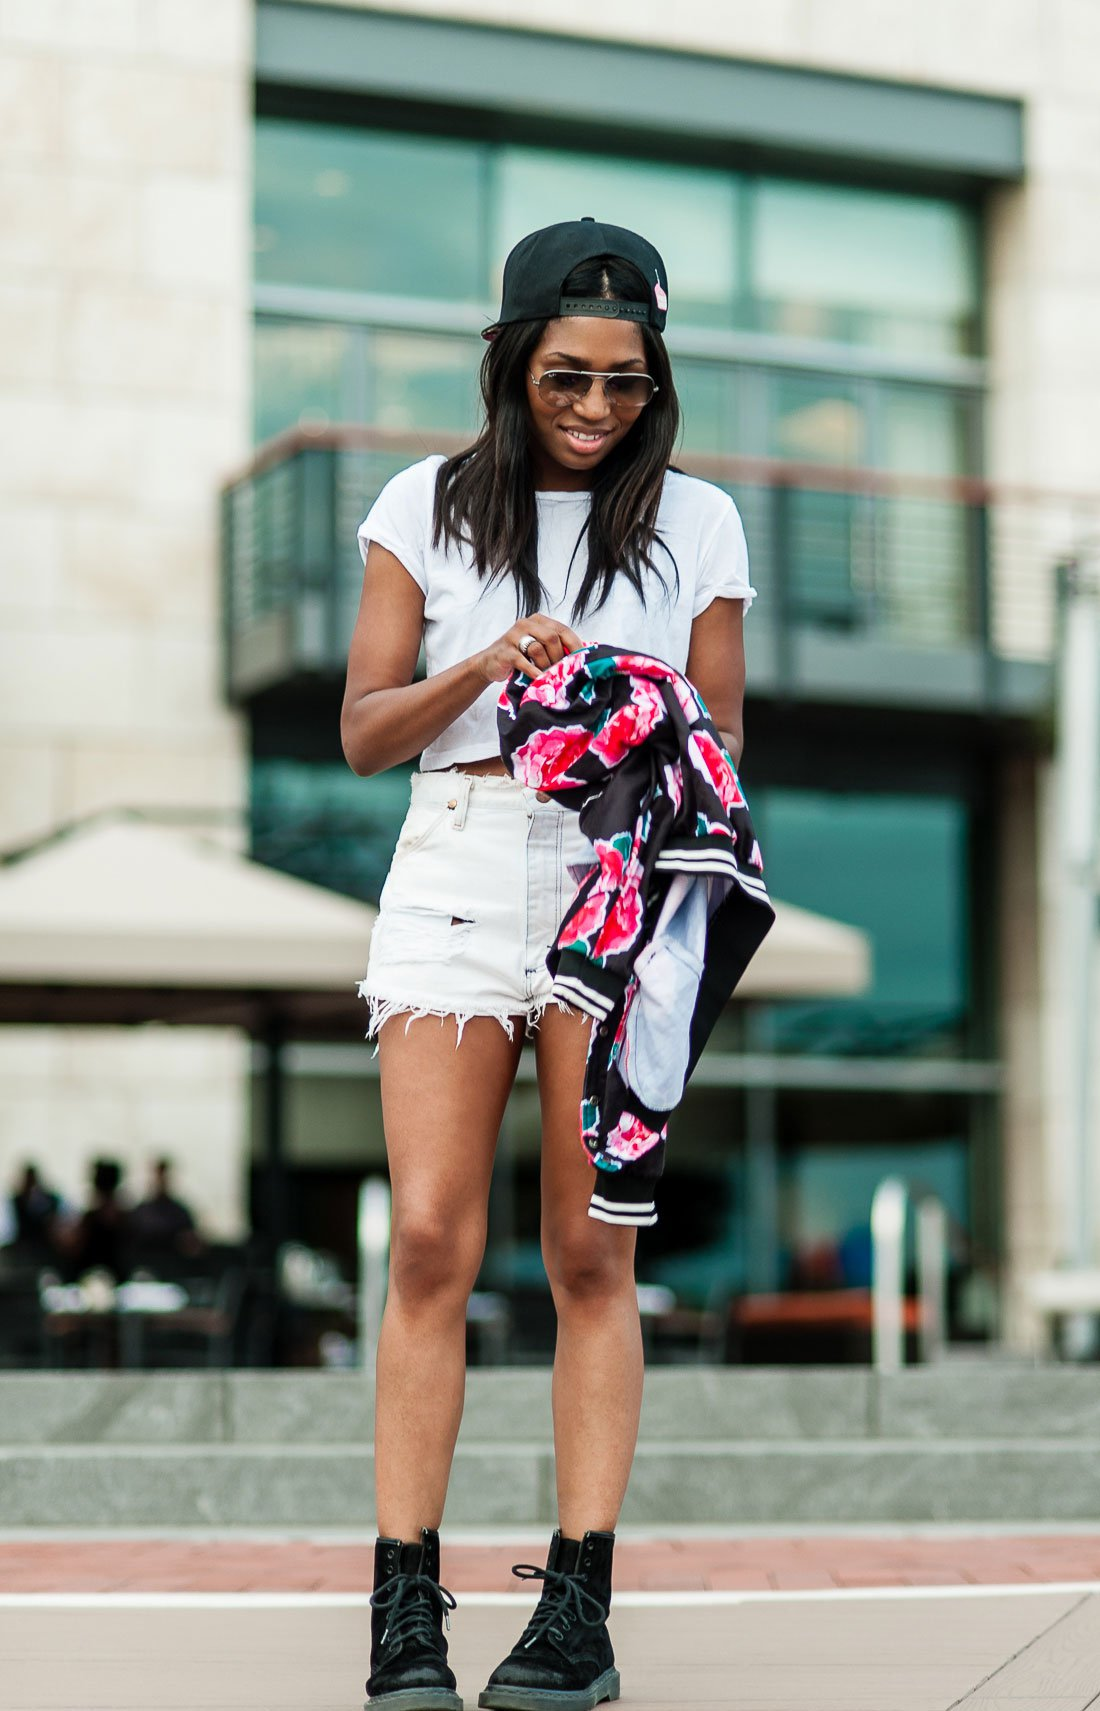 Four One Oh!   Baltimore Fashion Blogger - Personal Style & Food Blog Written by Tia Nicole